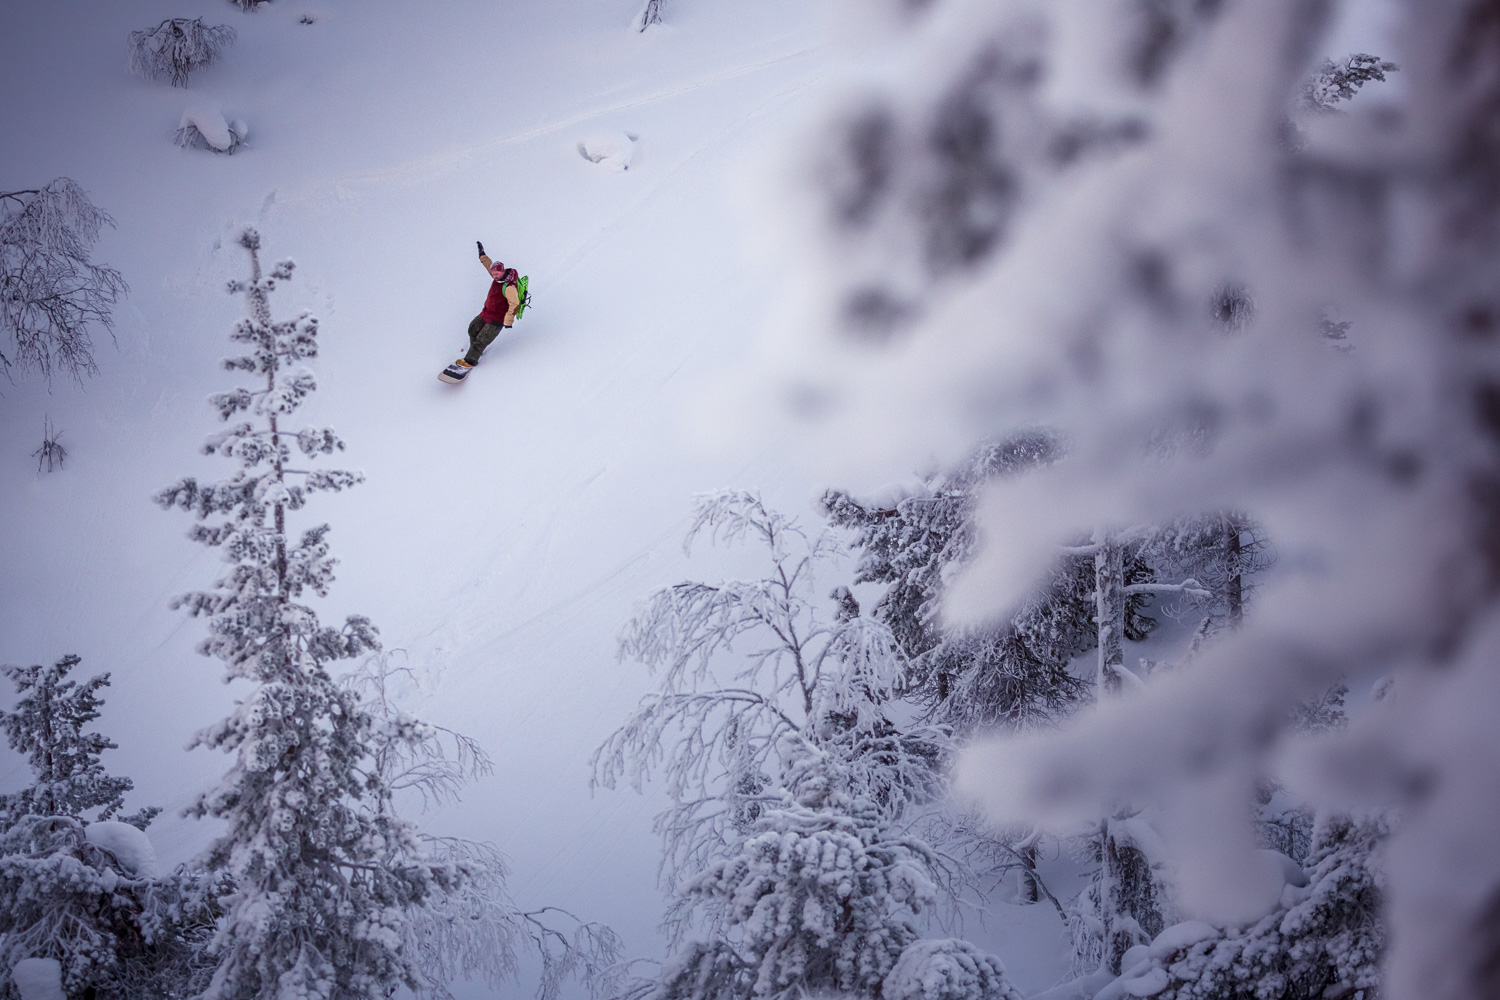 ski-through-norways-backcountry-powder-from-a-military-truck